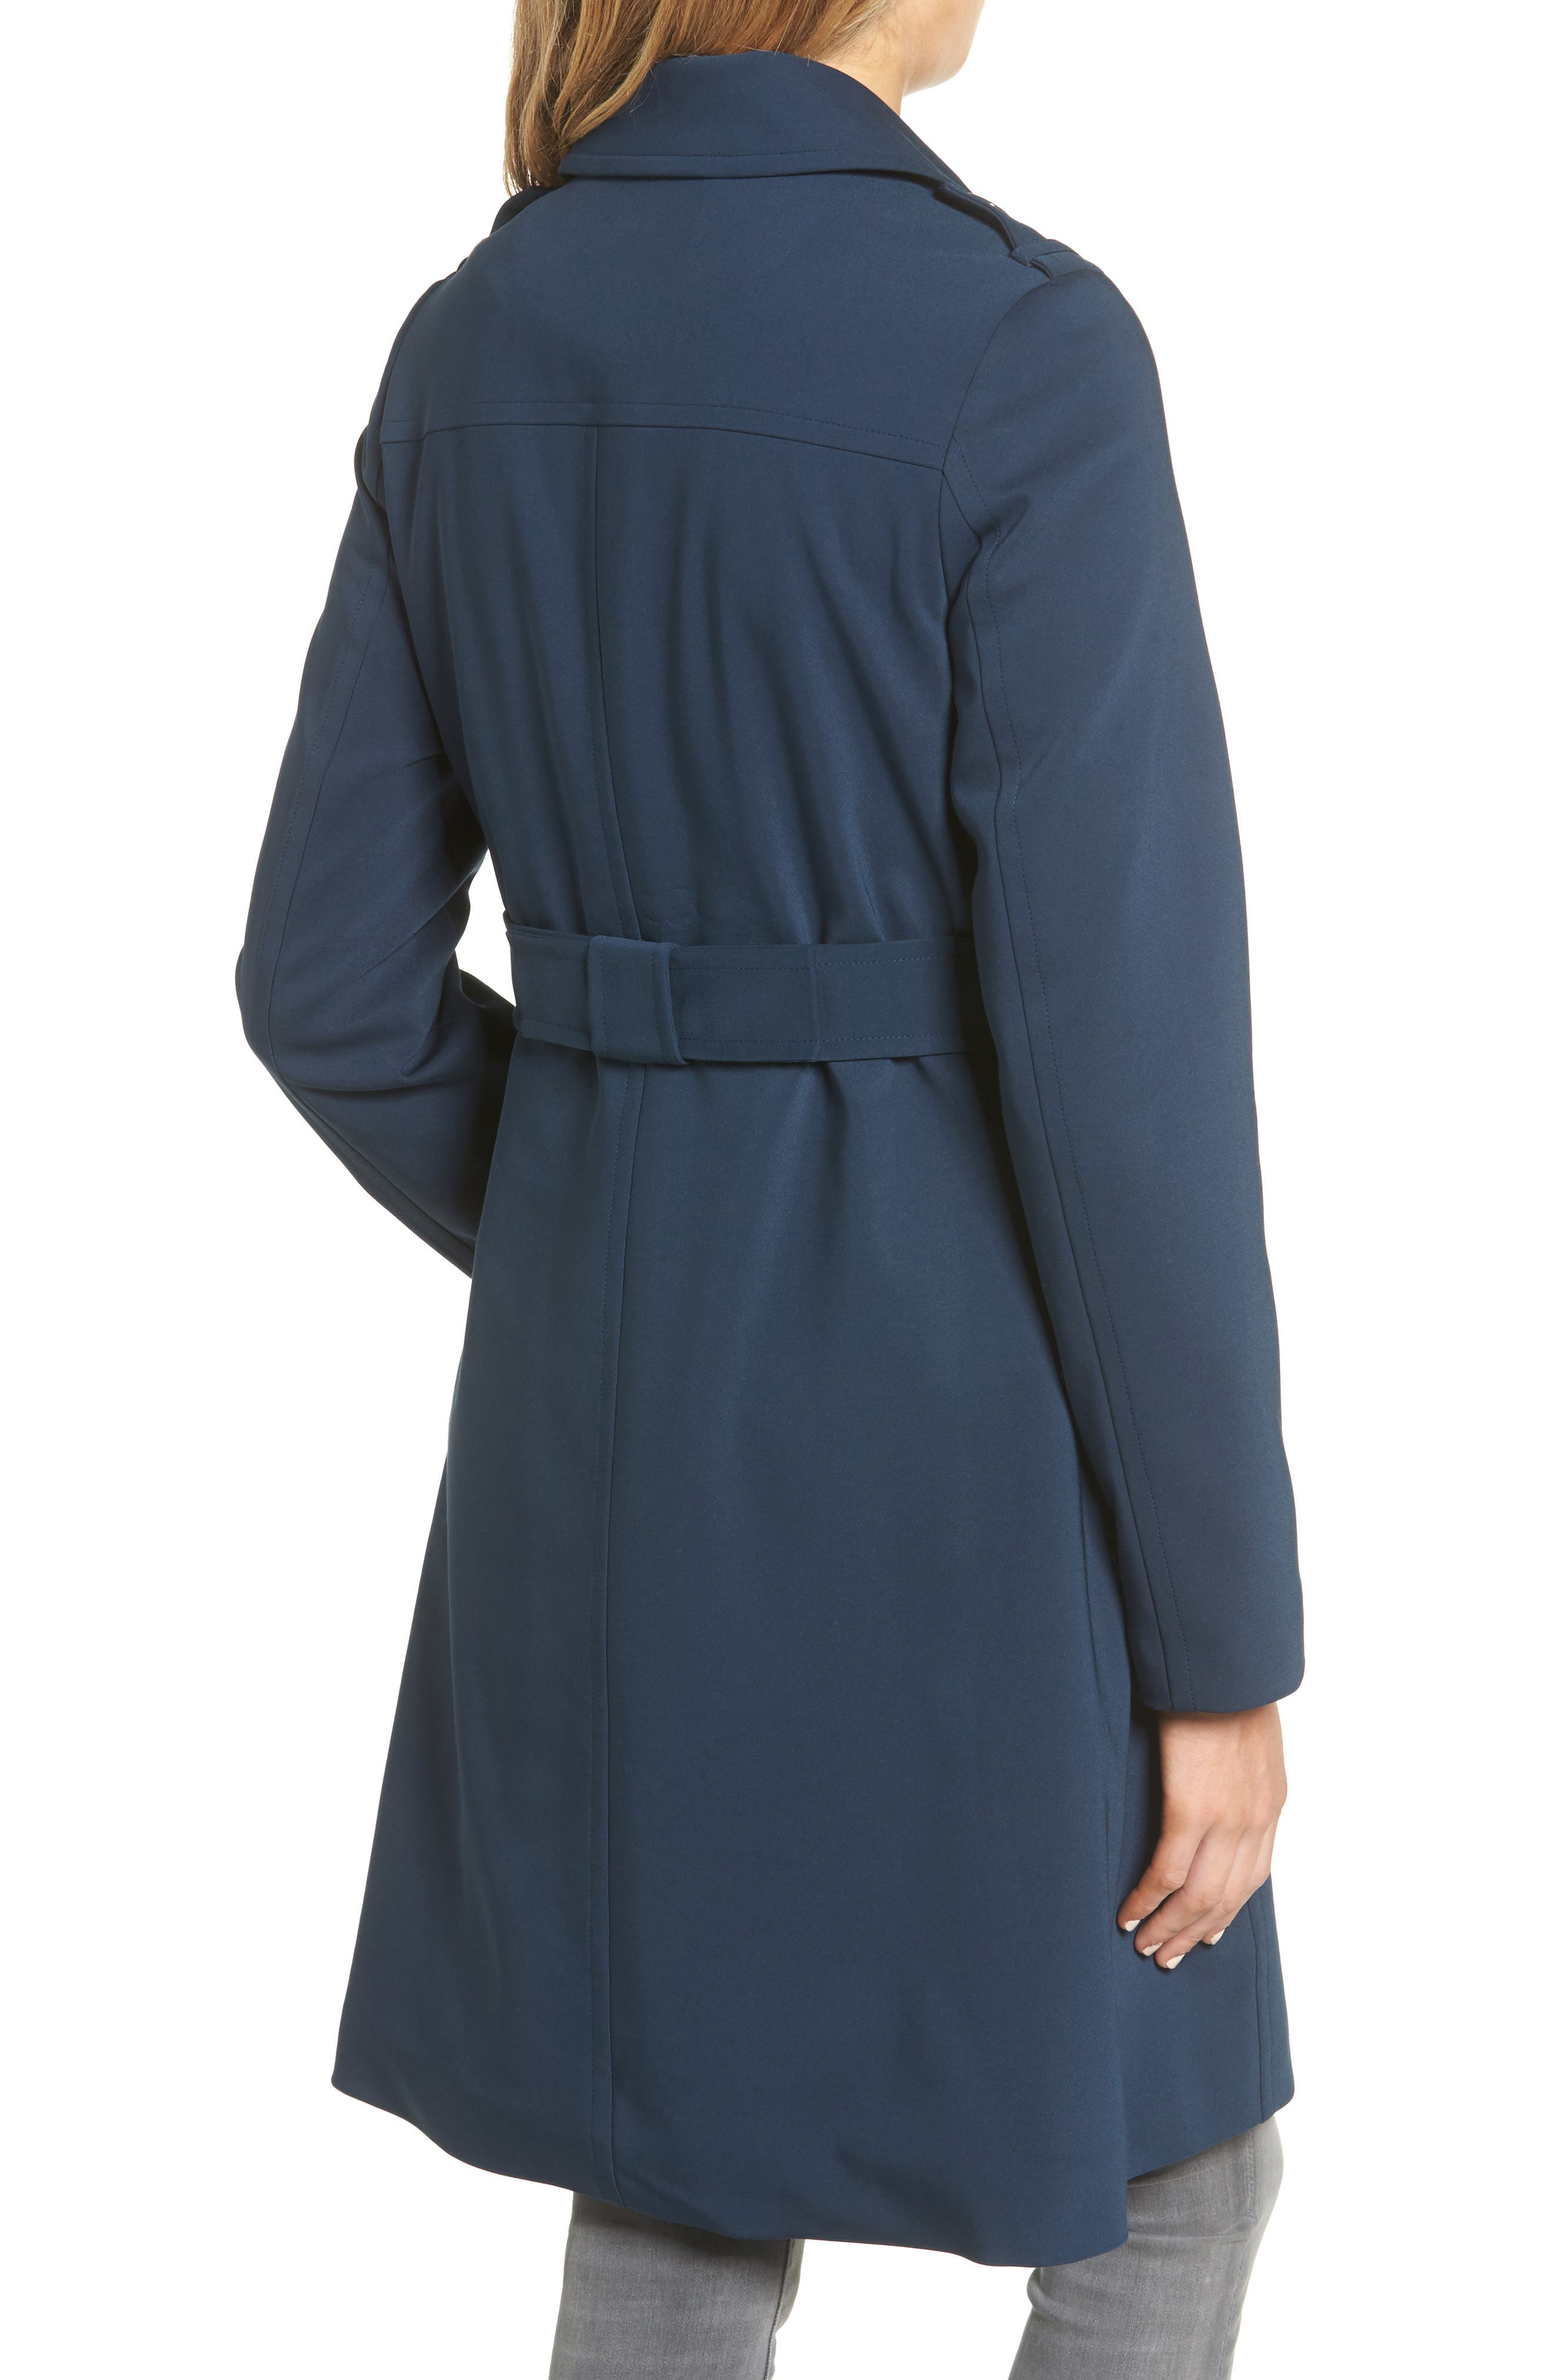 3-in-1 trench coat,                             Alternate thumbnail 2, color,                             Rich Navy